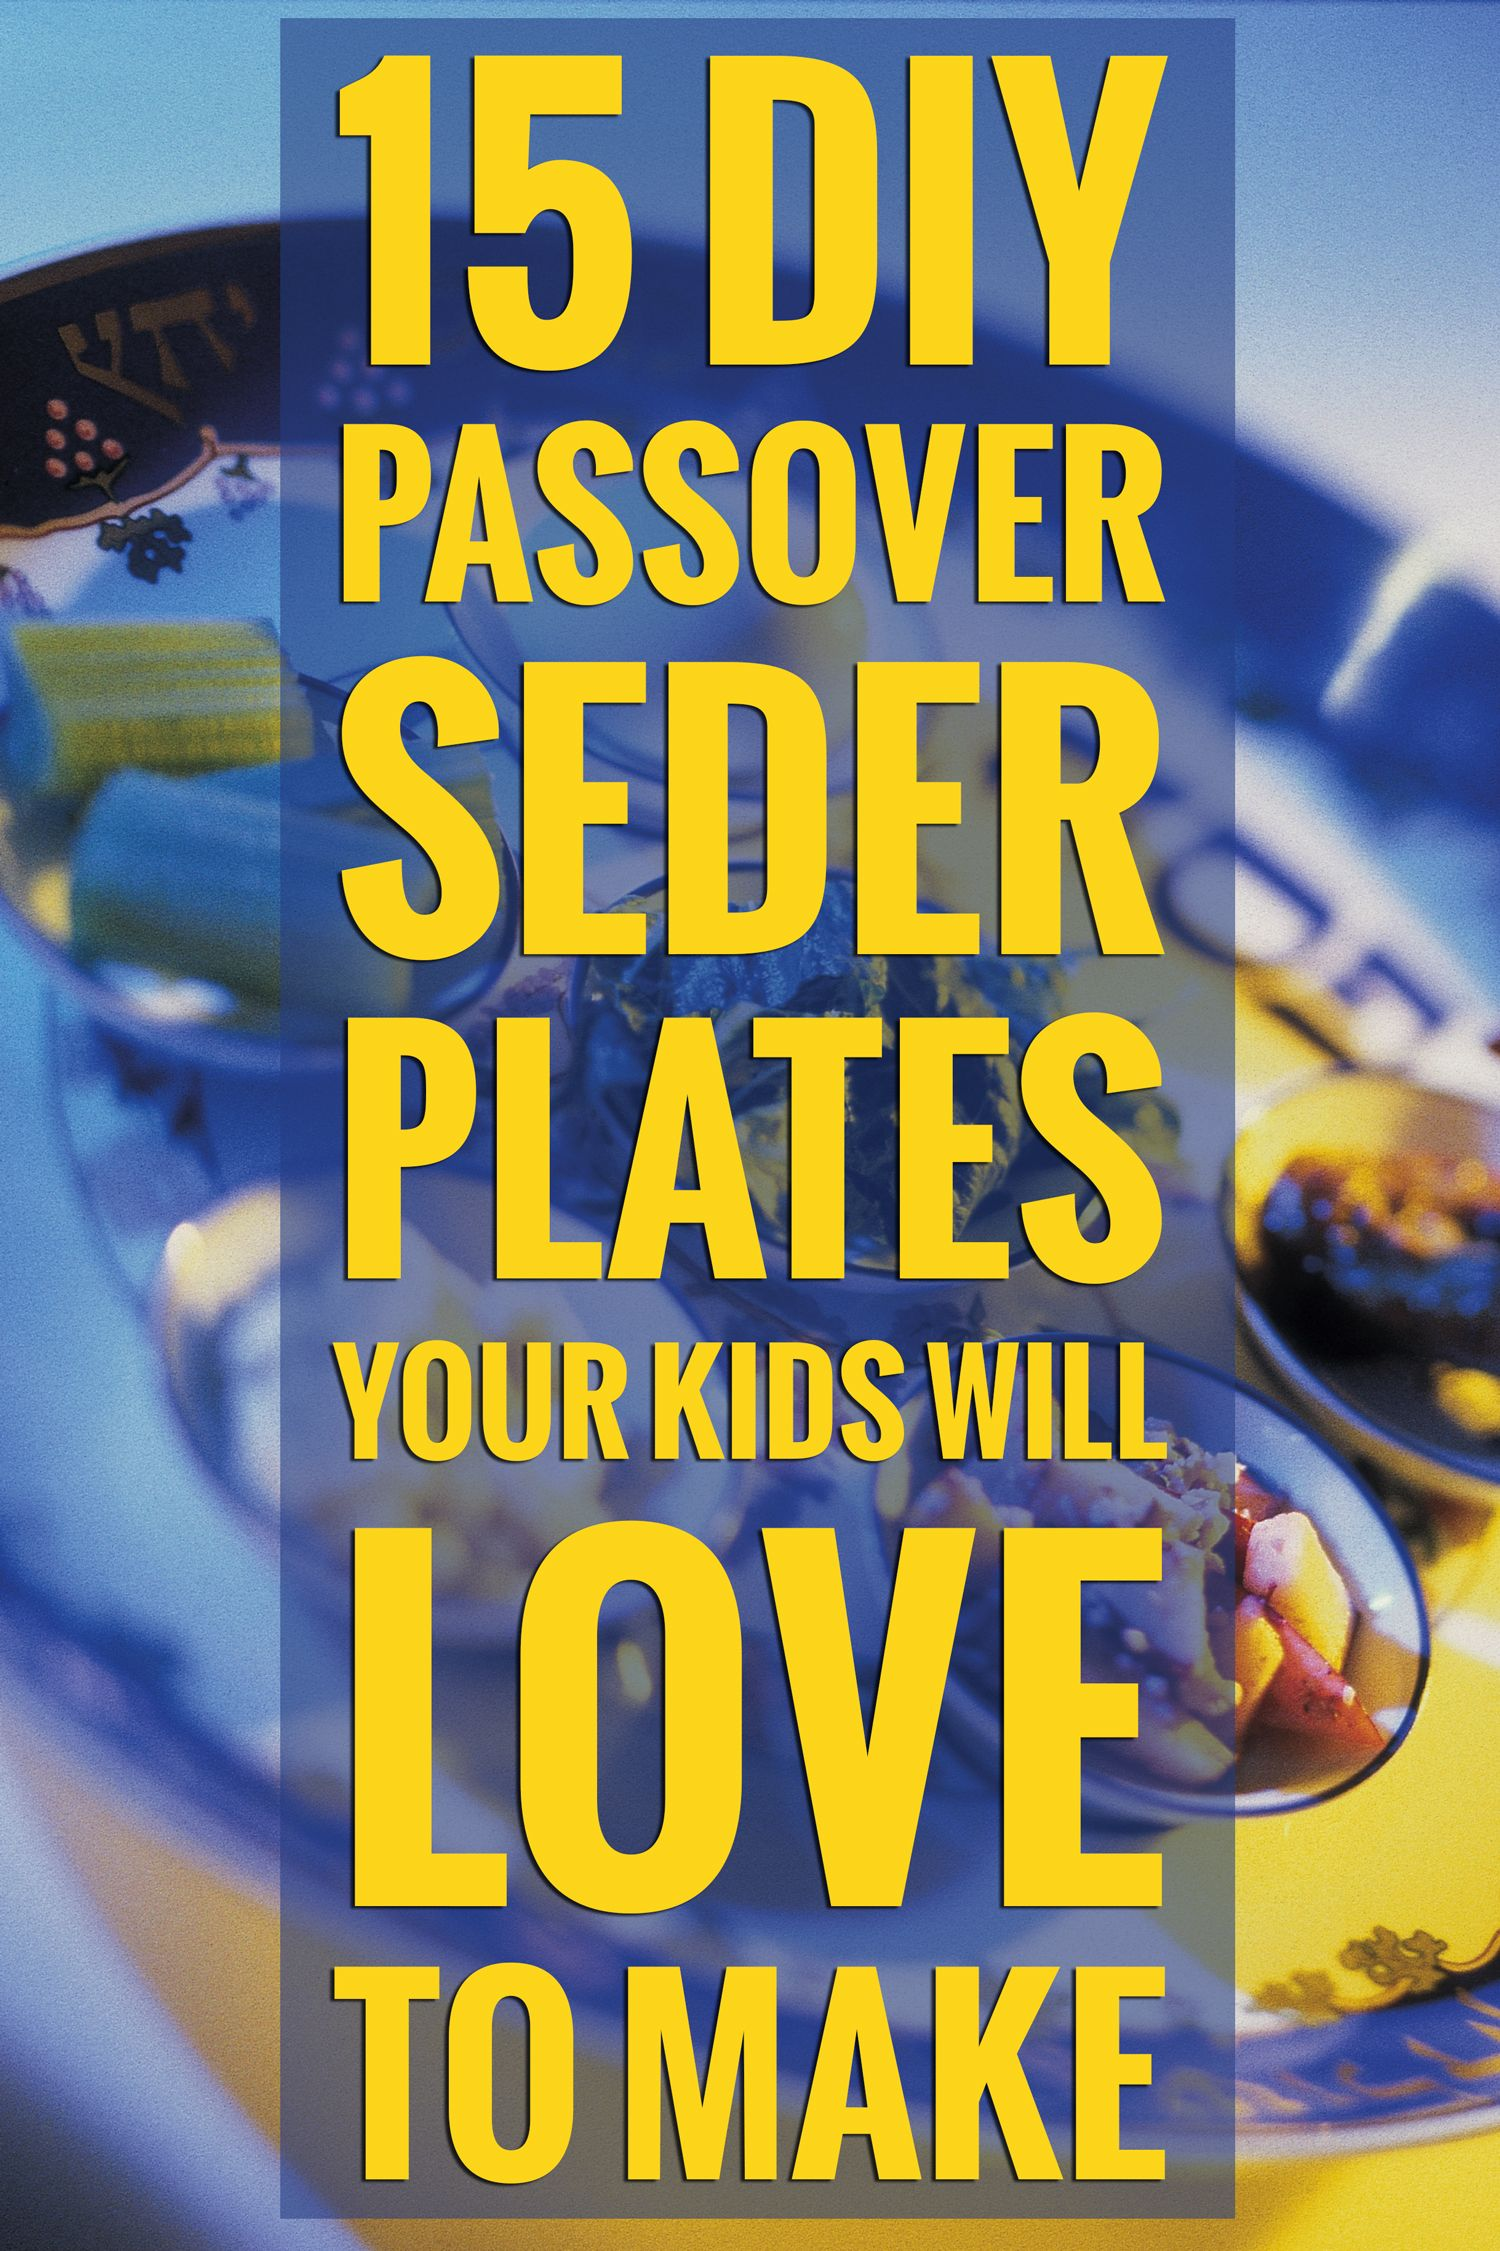 Get Your Kids Involved In Passover With These Awesome